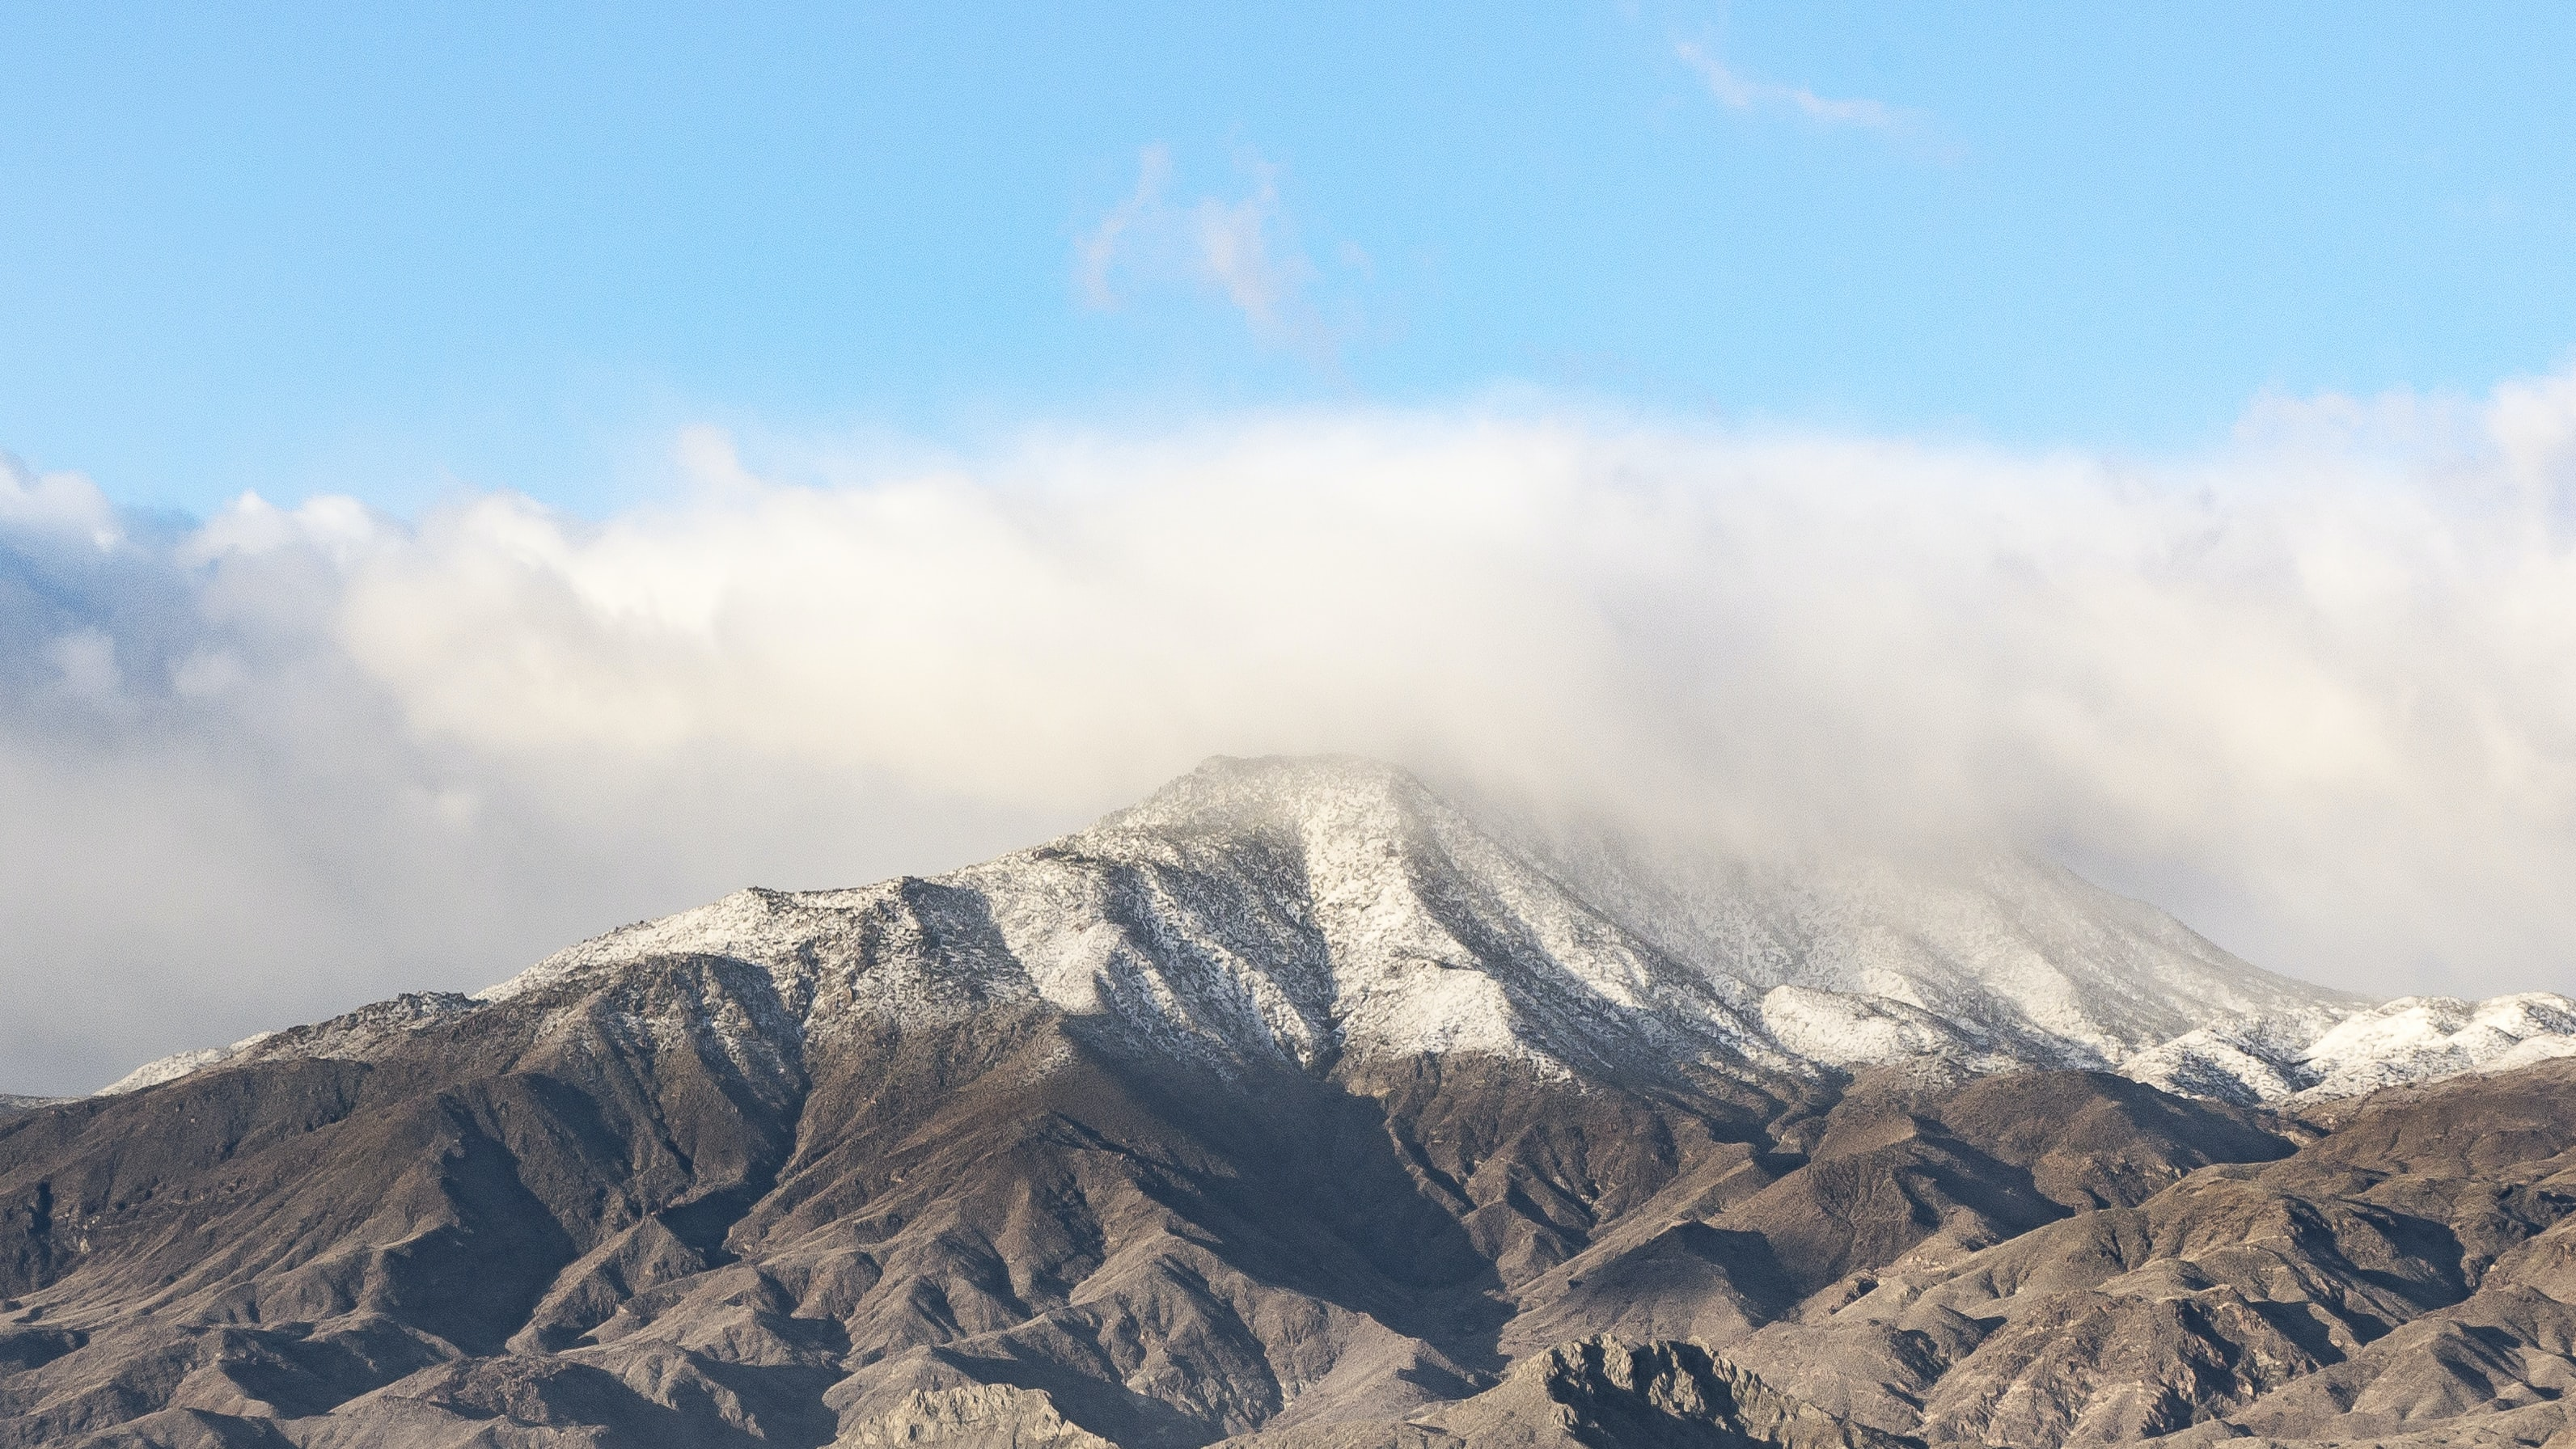 A scenic view of a snow covered mountain top with fog and a clear blue sky in Indio.